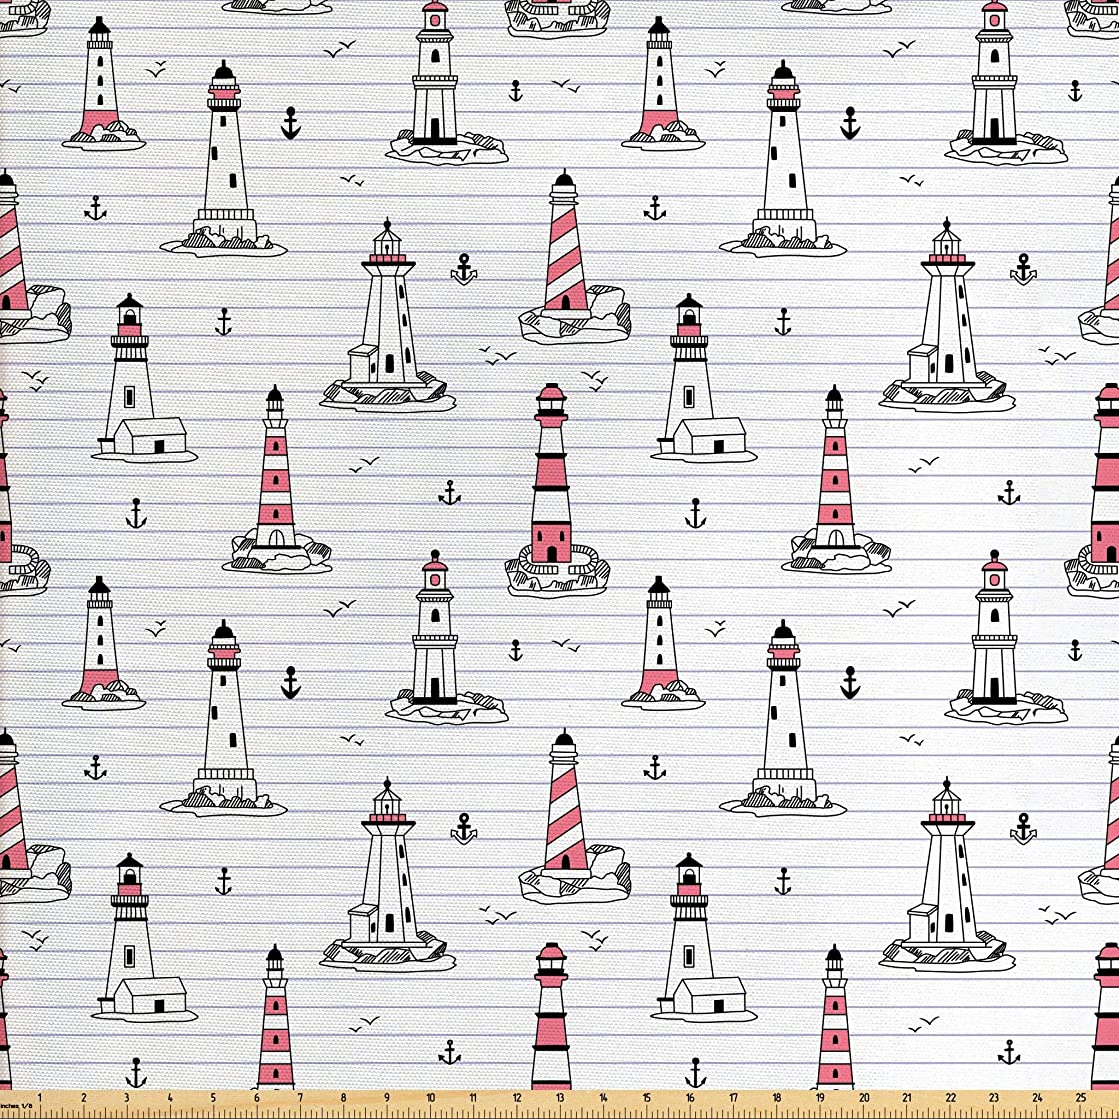 Ambesonne Lighthouse Fabric by The Yard, Notebook Pattern with Nautical Elements Seagulls and Anchors Doodle Style, Decorative Fabric for Upholstery and Home Accents, 3 Yards, Pink Lilac Black